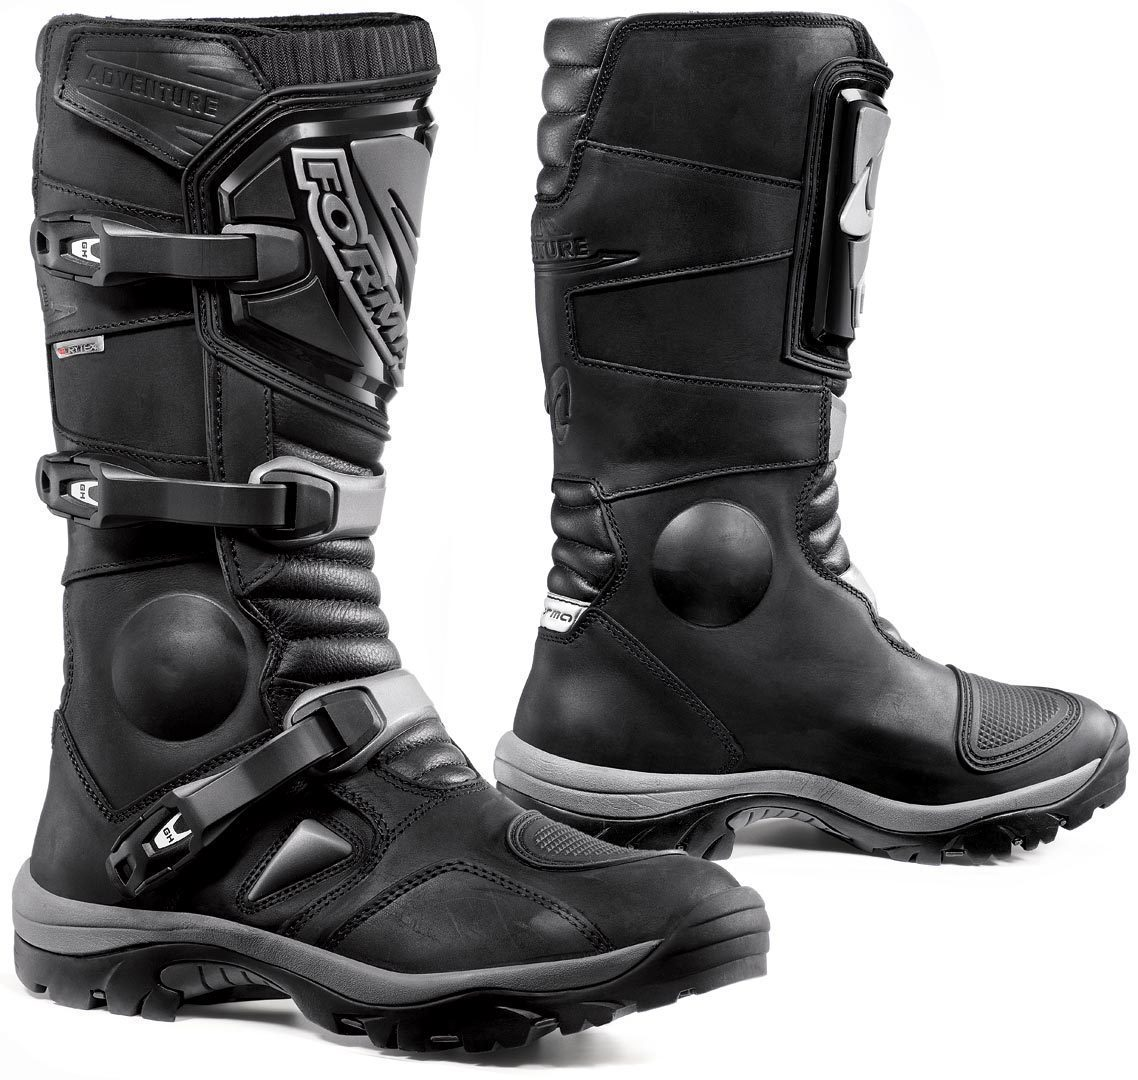 50 Best čizme images | Hiking boots, Shoe boots, Boots